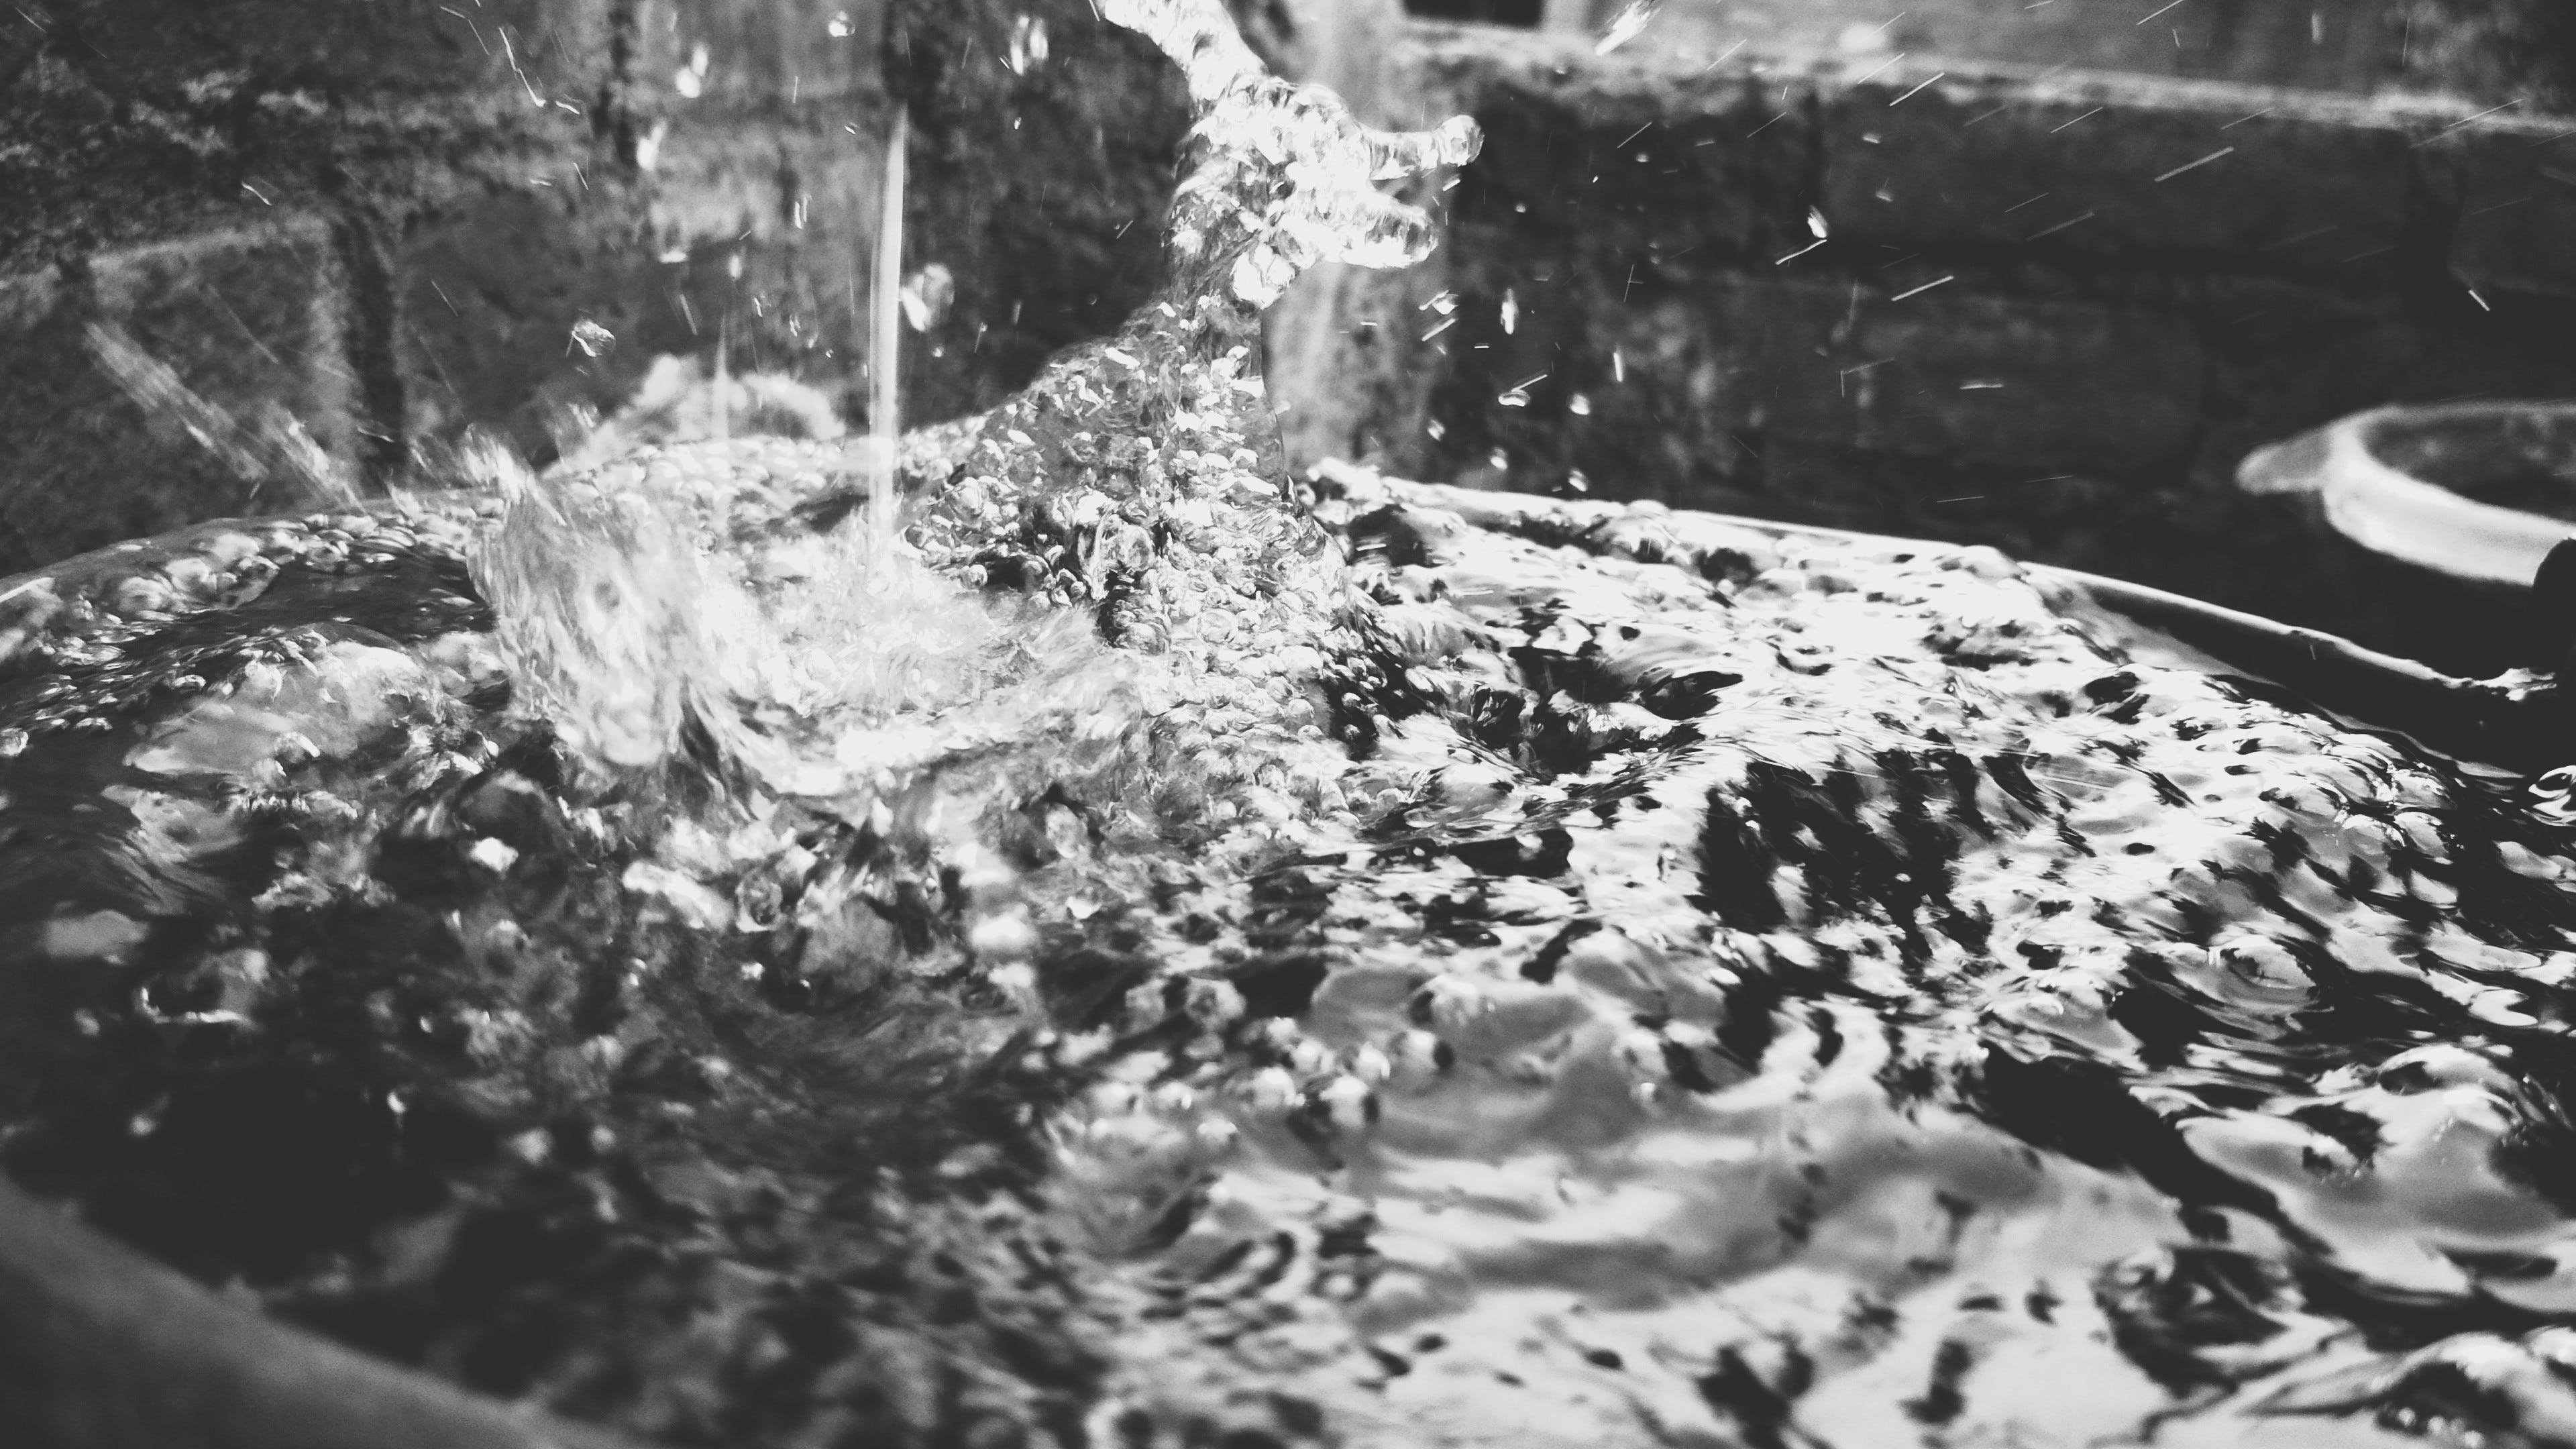 black and white, close -up, drops of water